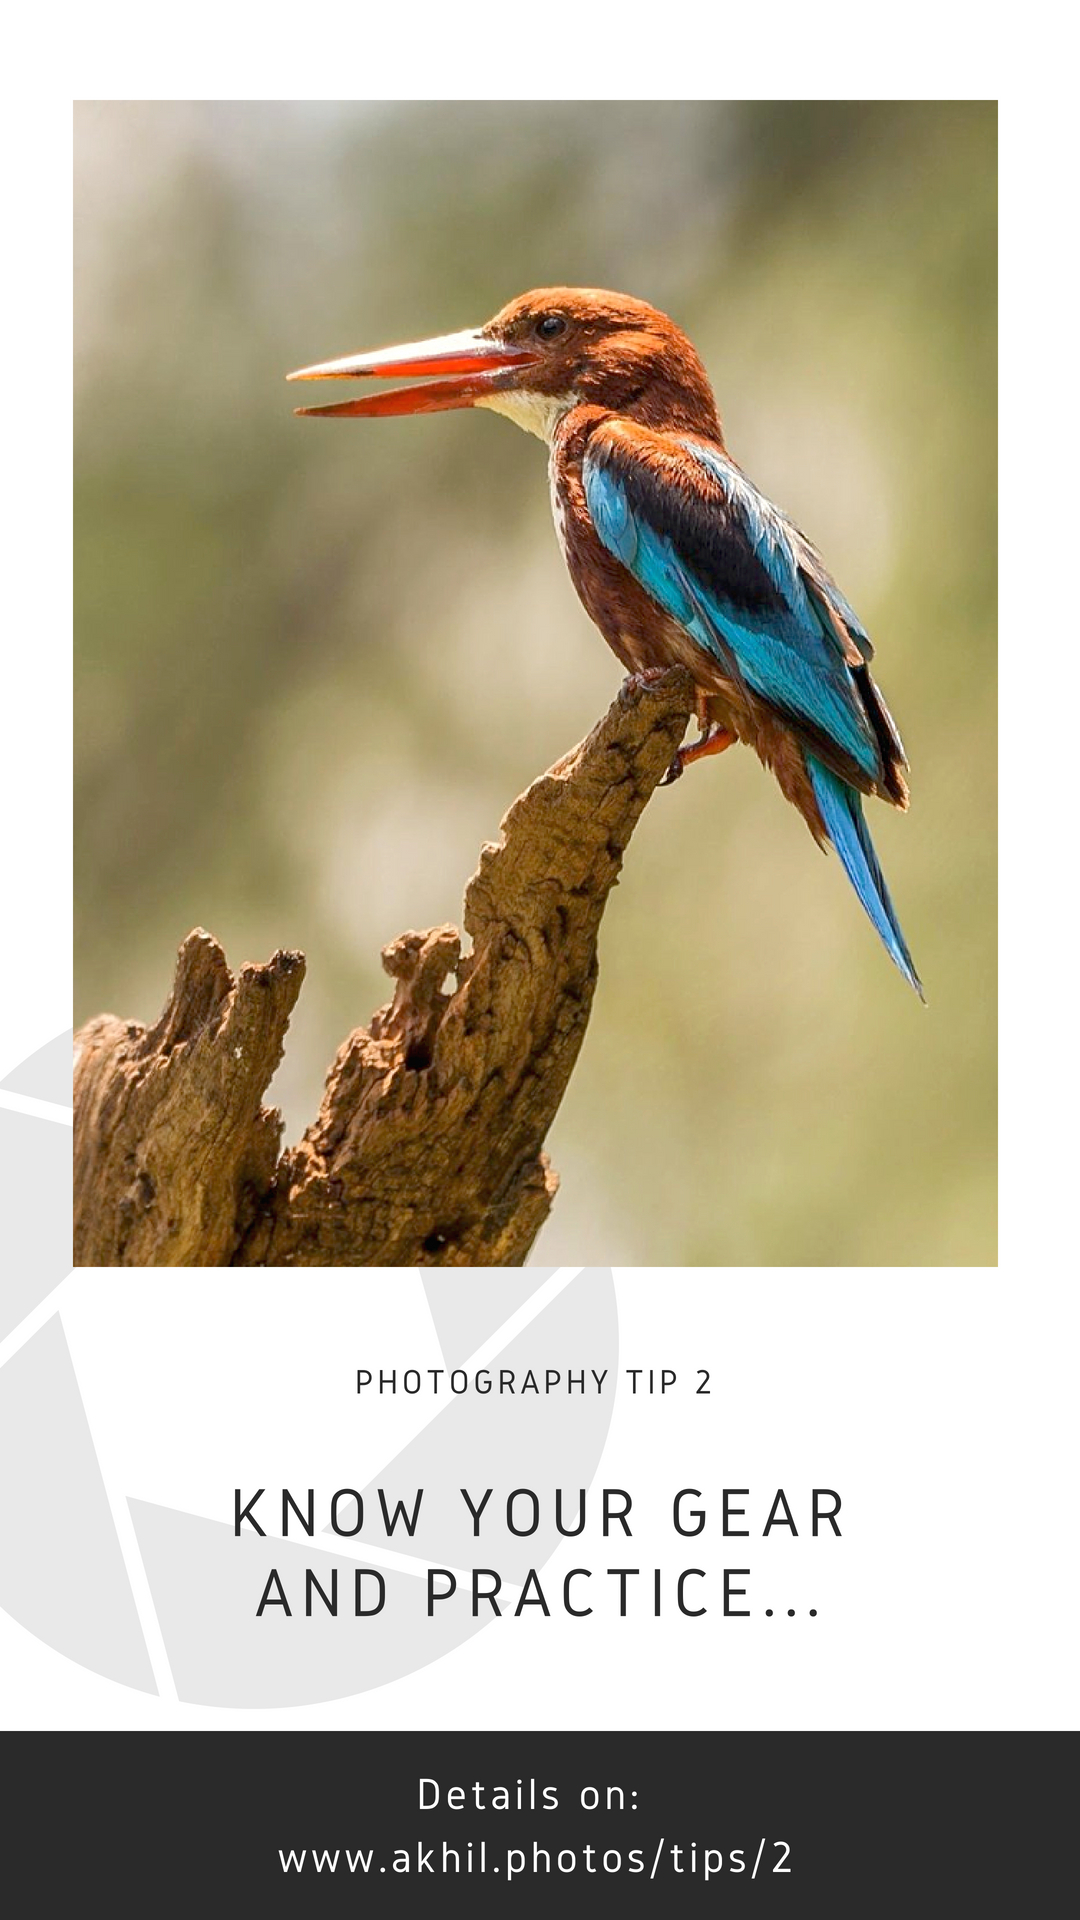 This White-throated Kingfisher image was shot many years ago when I was just starting wildlife photography with a 70-300mm lens and 500D body. The image was shot at noon and hence the bright patch of light on the beak.